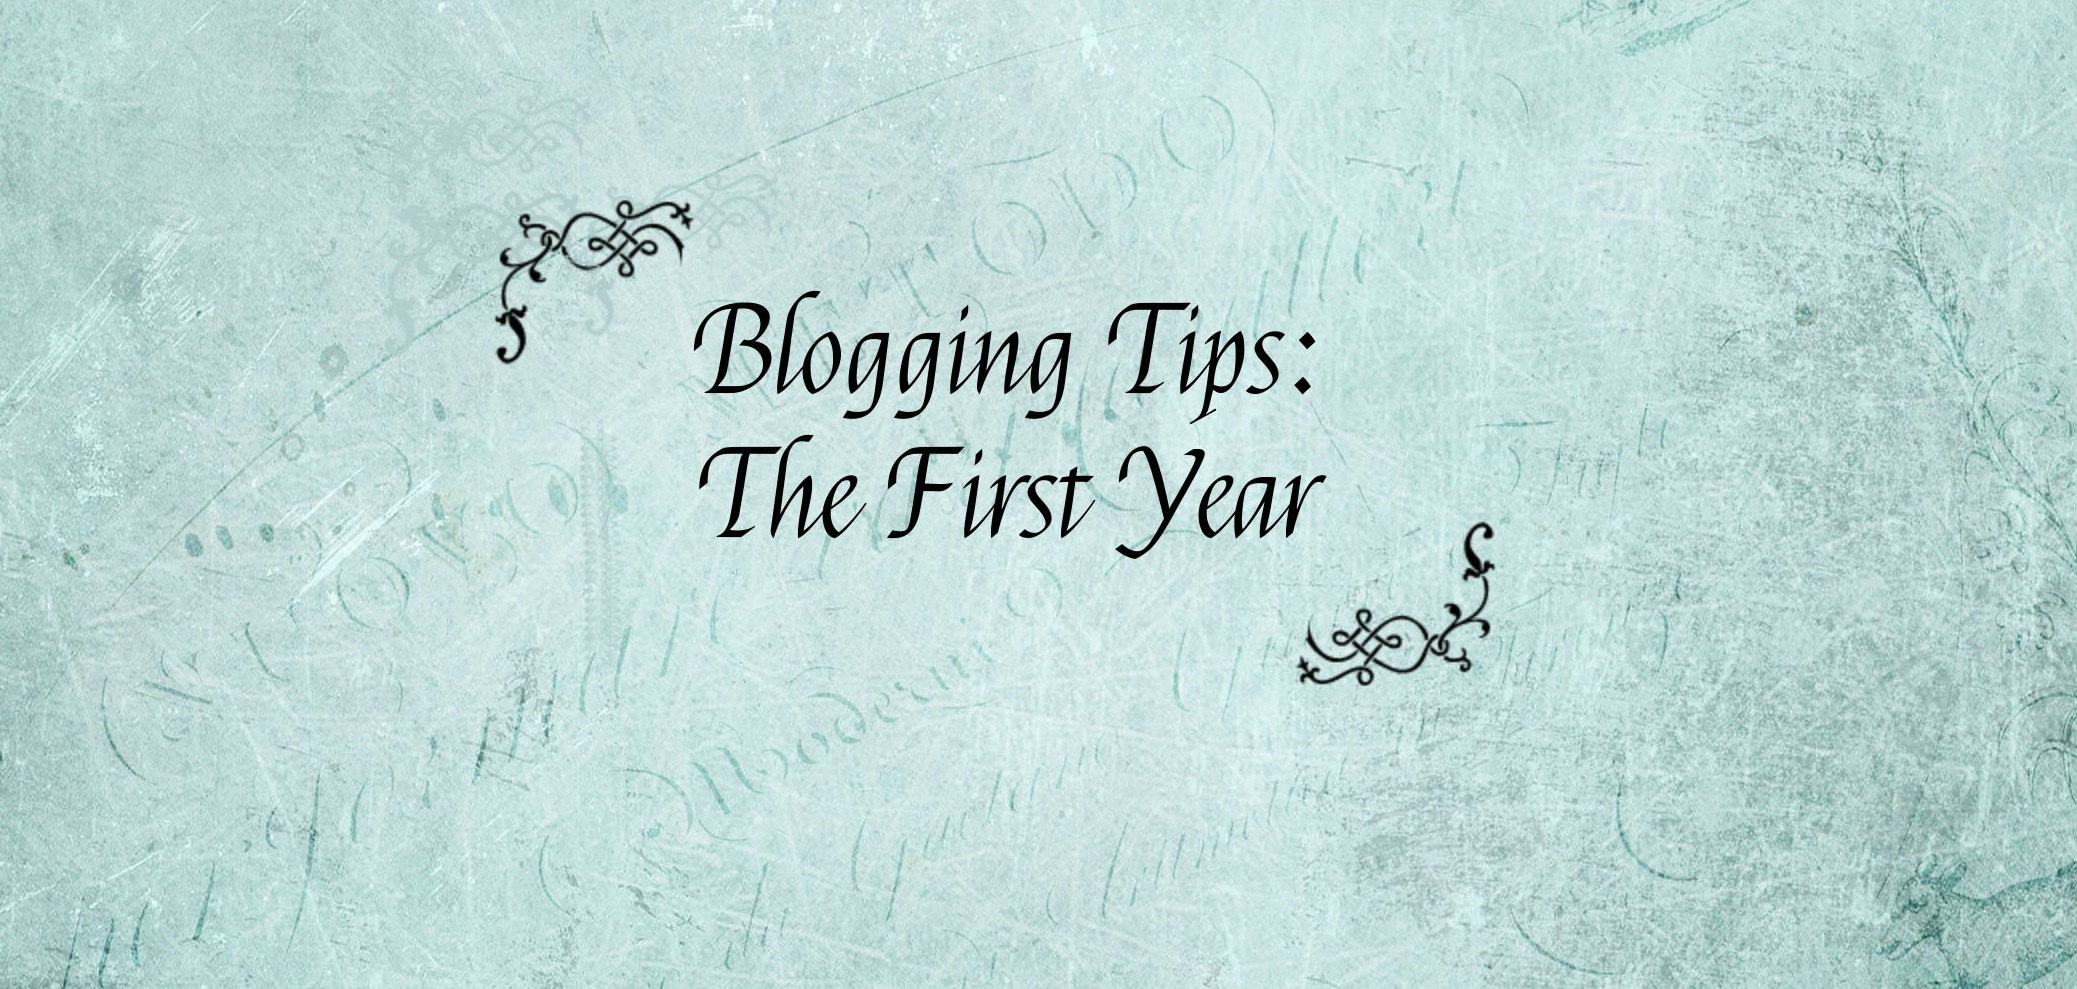 Blogging Tips: The First Year